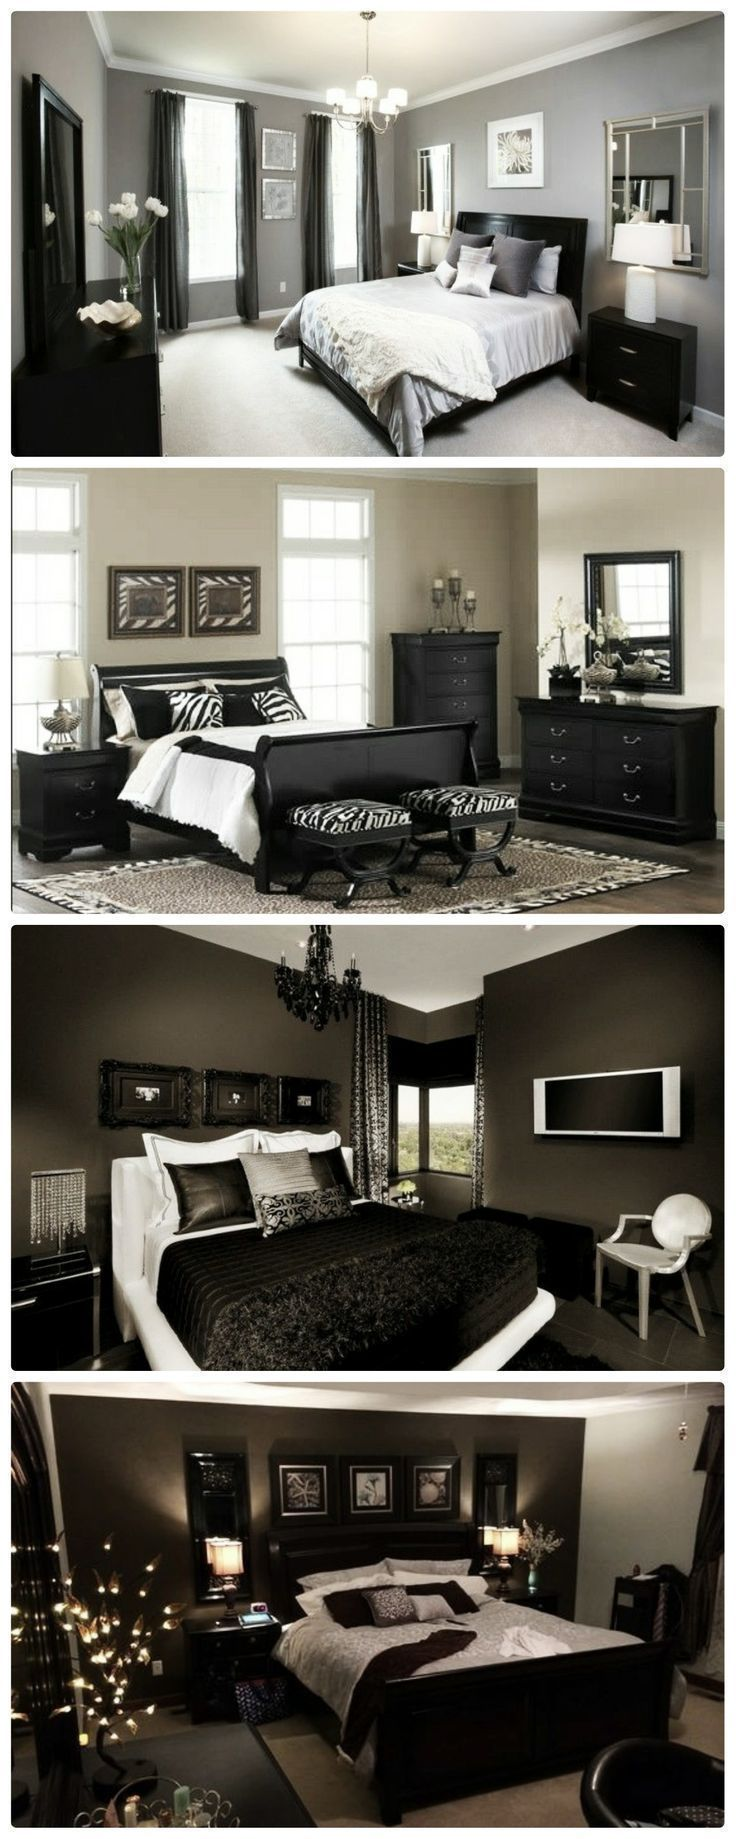 27 Bedroom Decor Ideas For Couples Singles And Teenagers Be Bedroom Designs For Couples Bedroom Ideas For Couples Modern Apartment Decorating For Couples